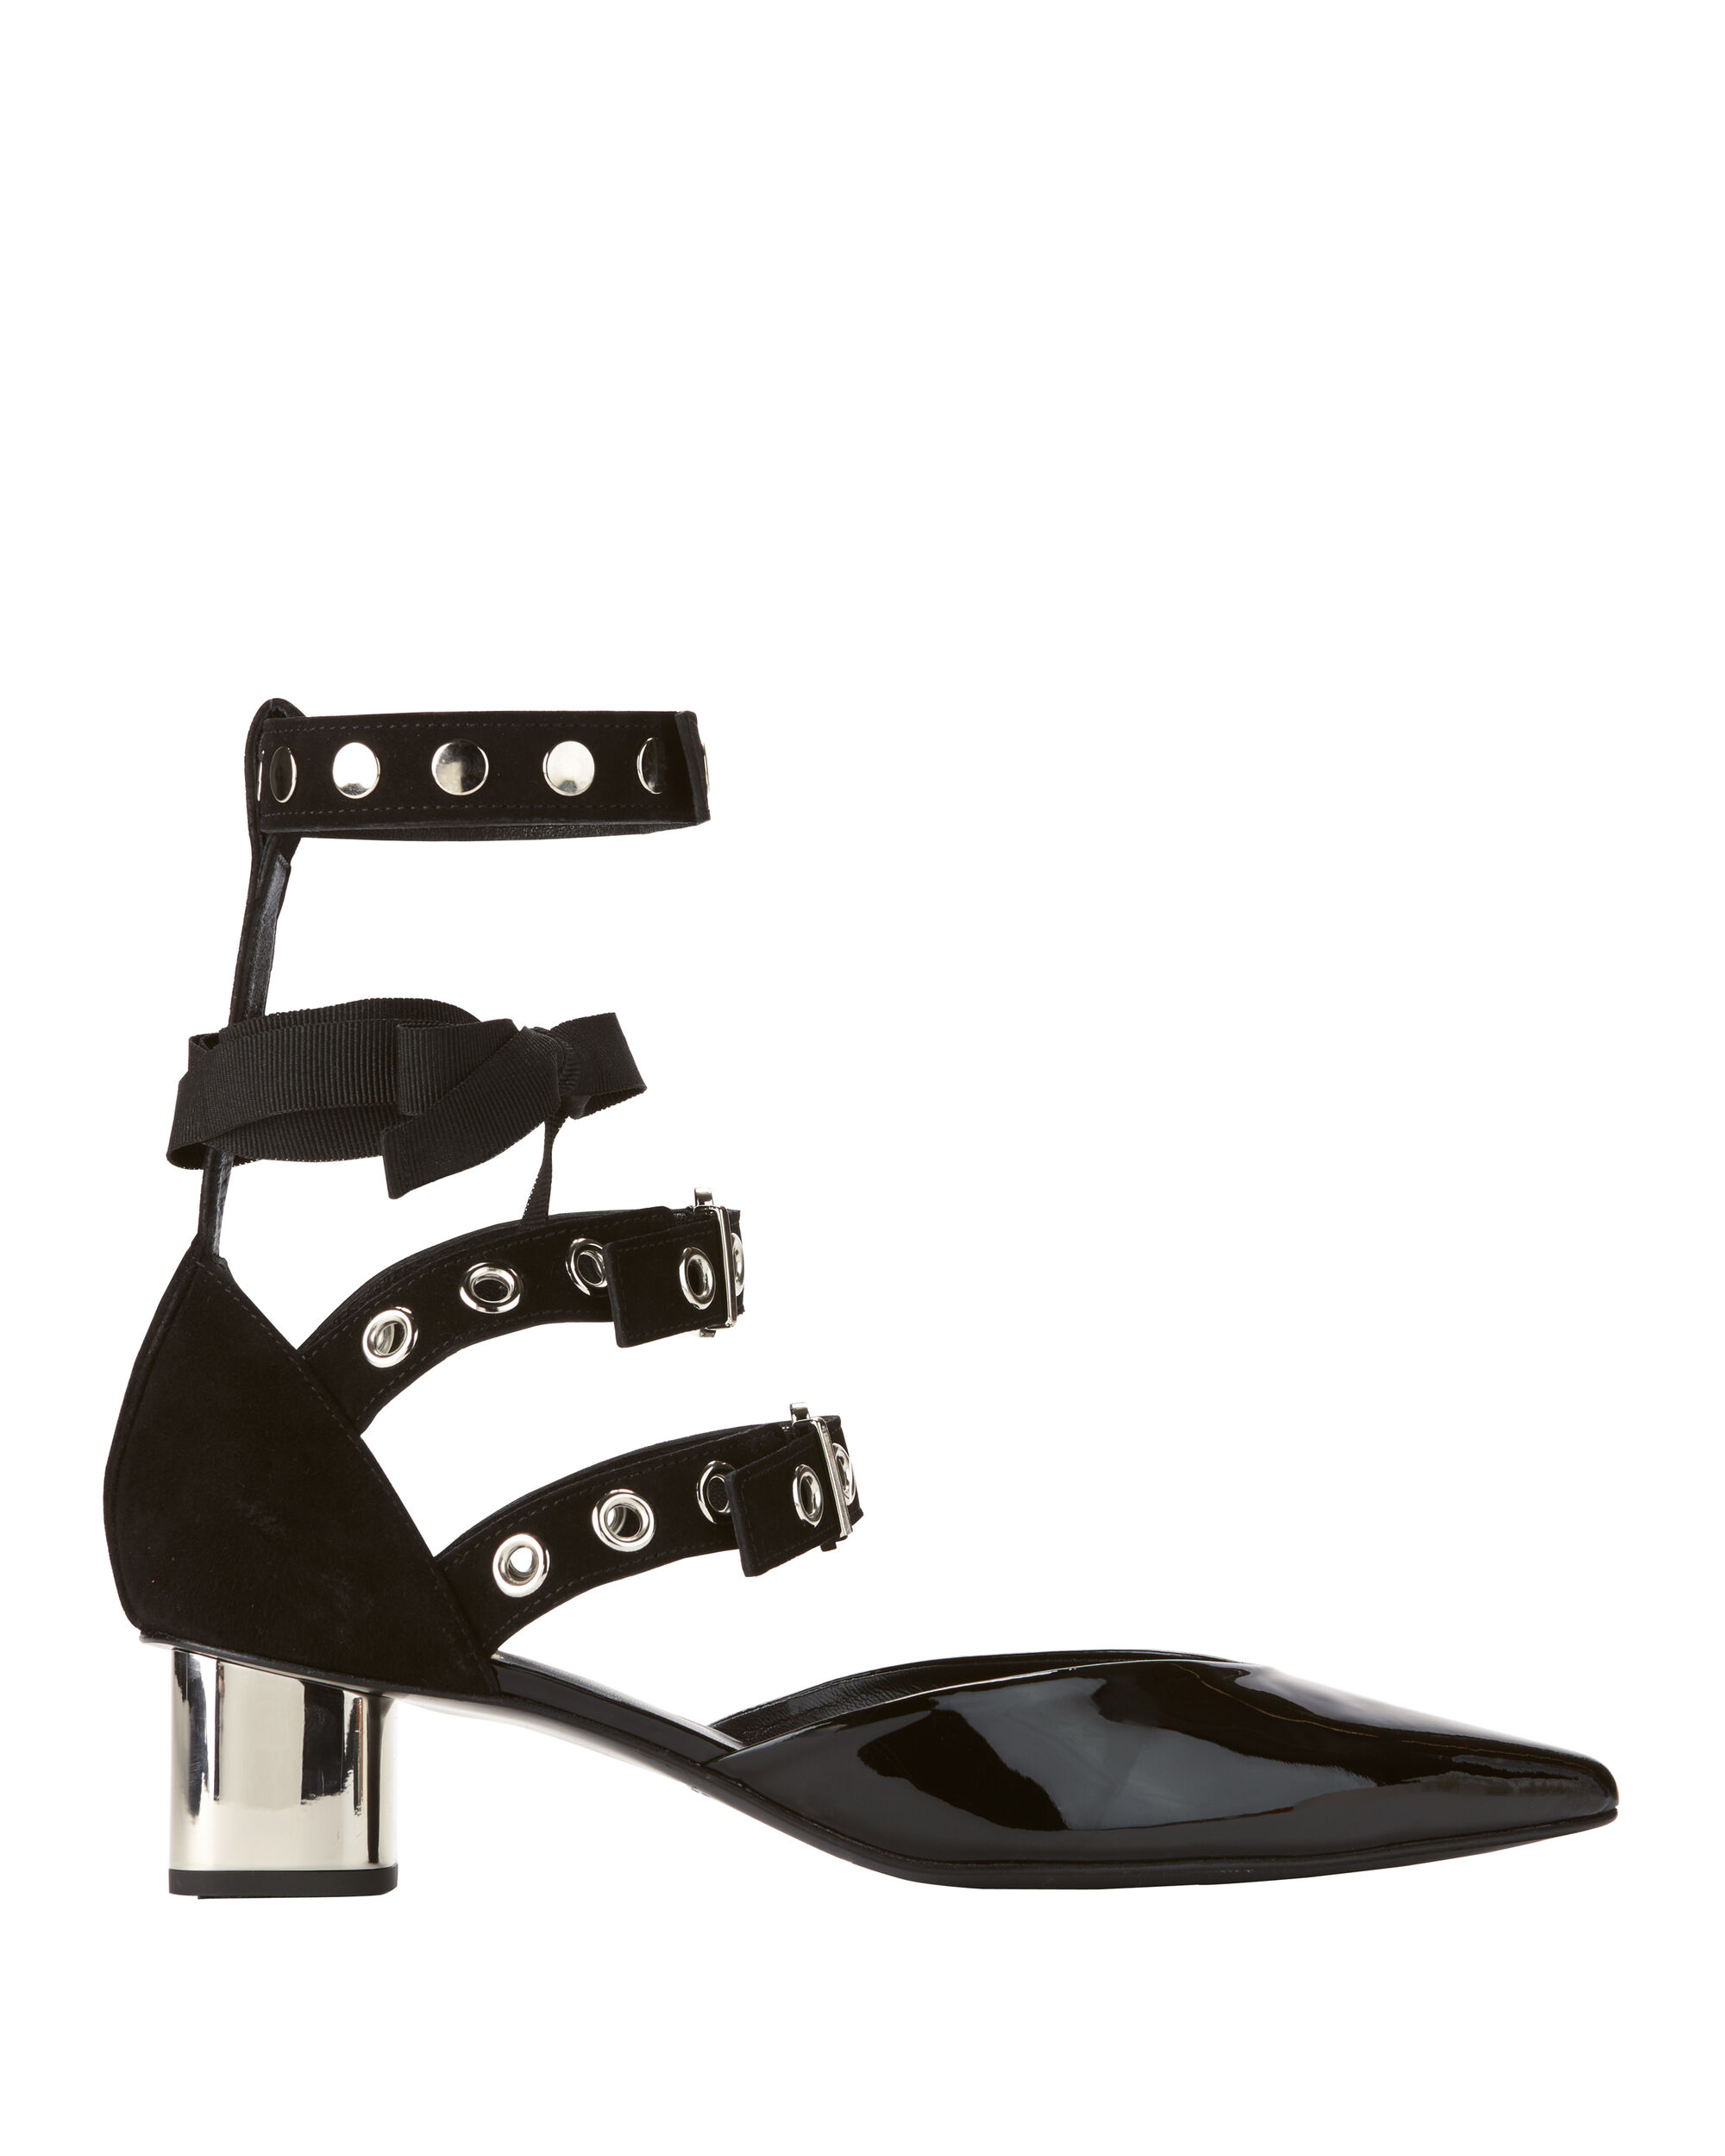 Robert Clergerie X Self-Portrait Susa Ankle Strap Pumps, BLACK, hi-res